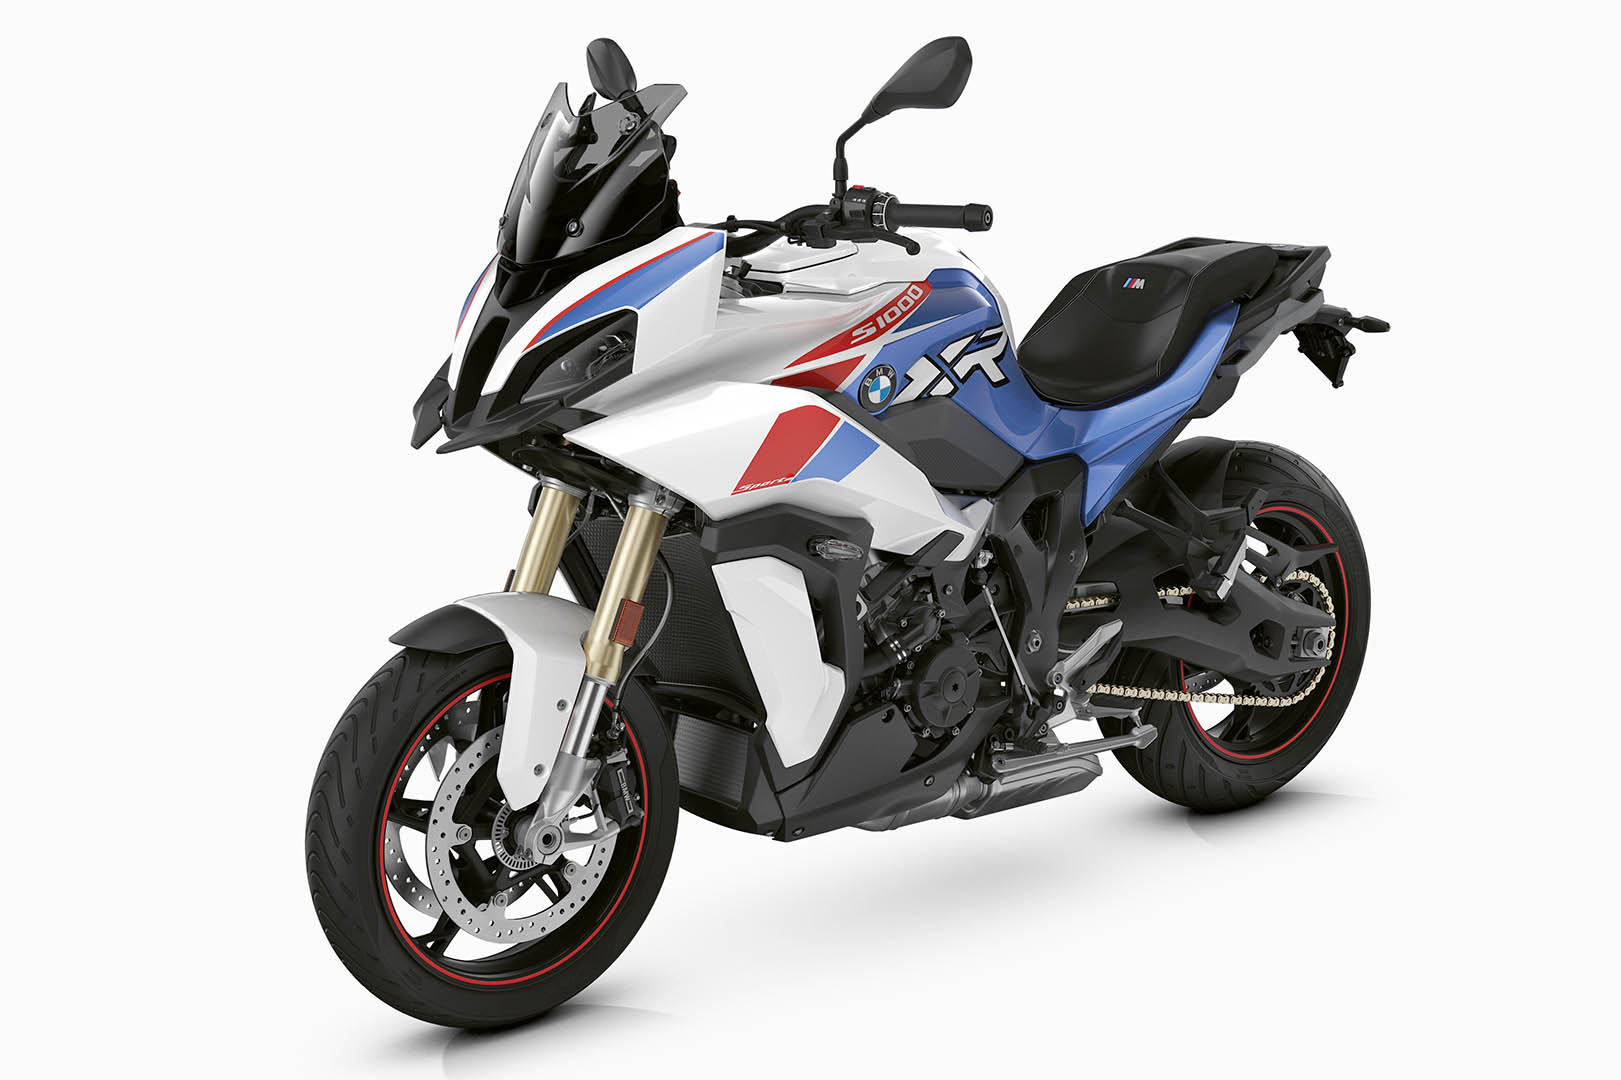 2021 BMW S 1000 XR First Look - Colors